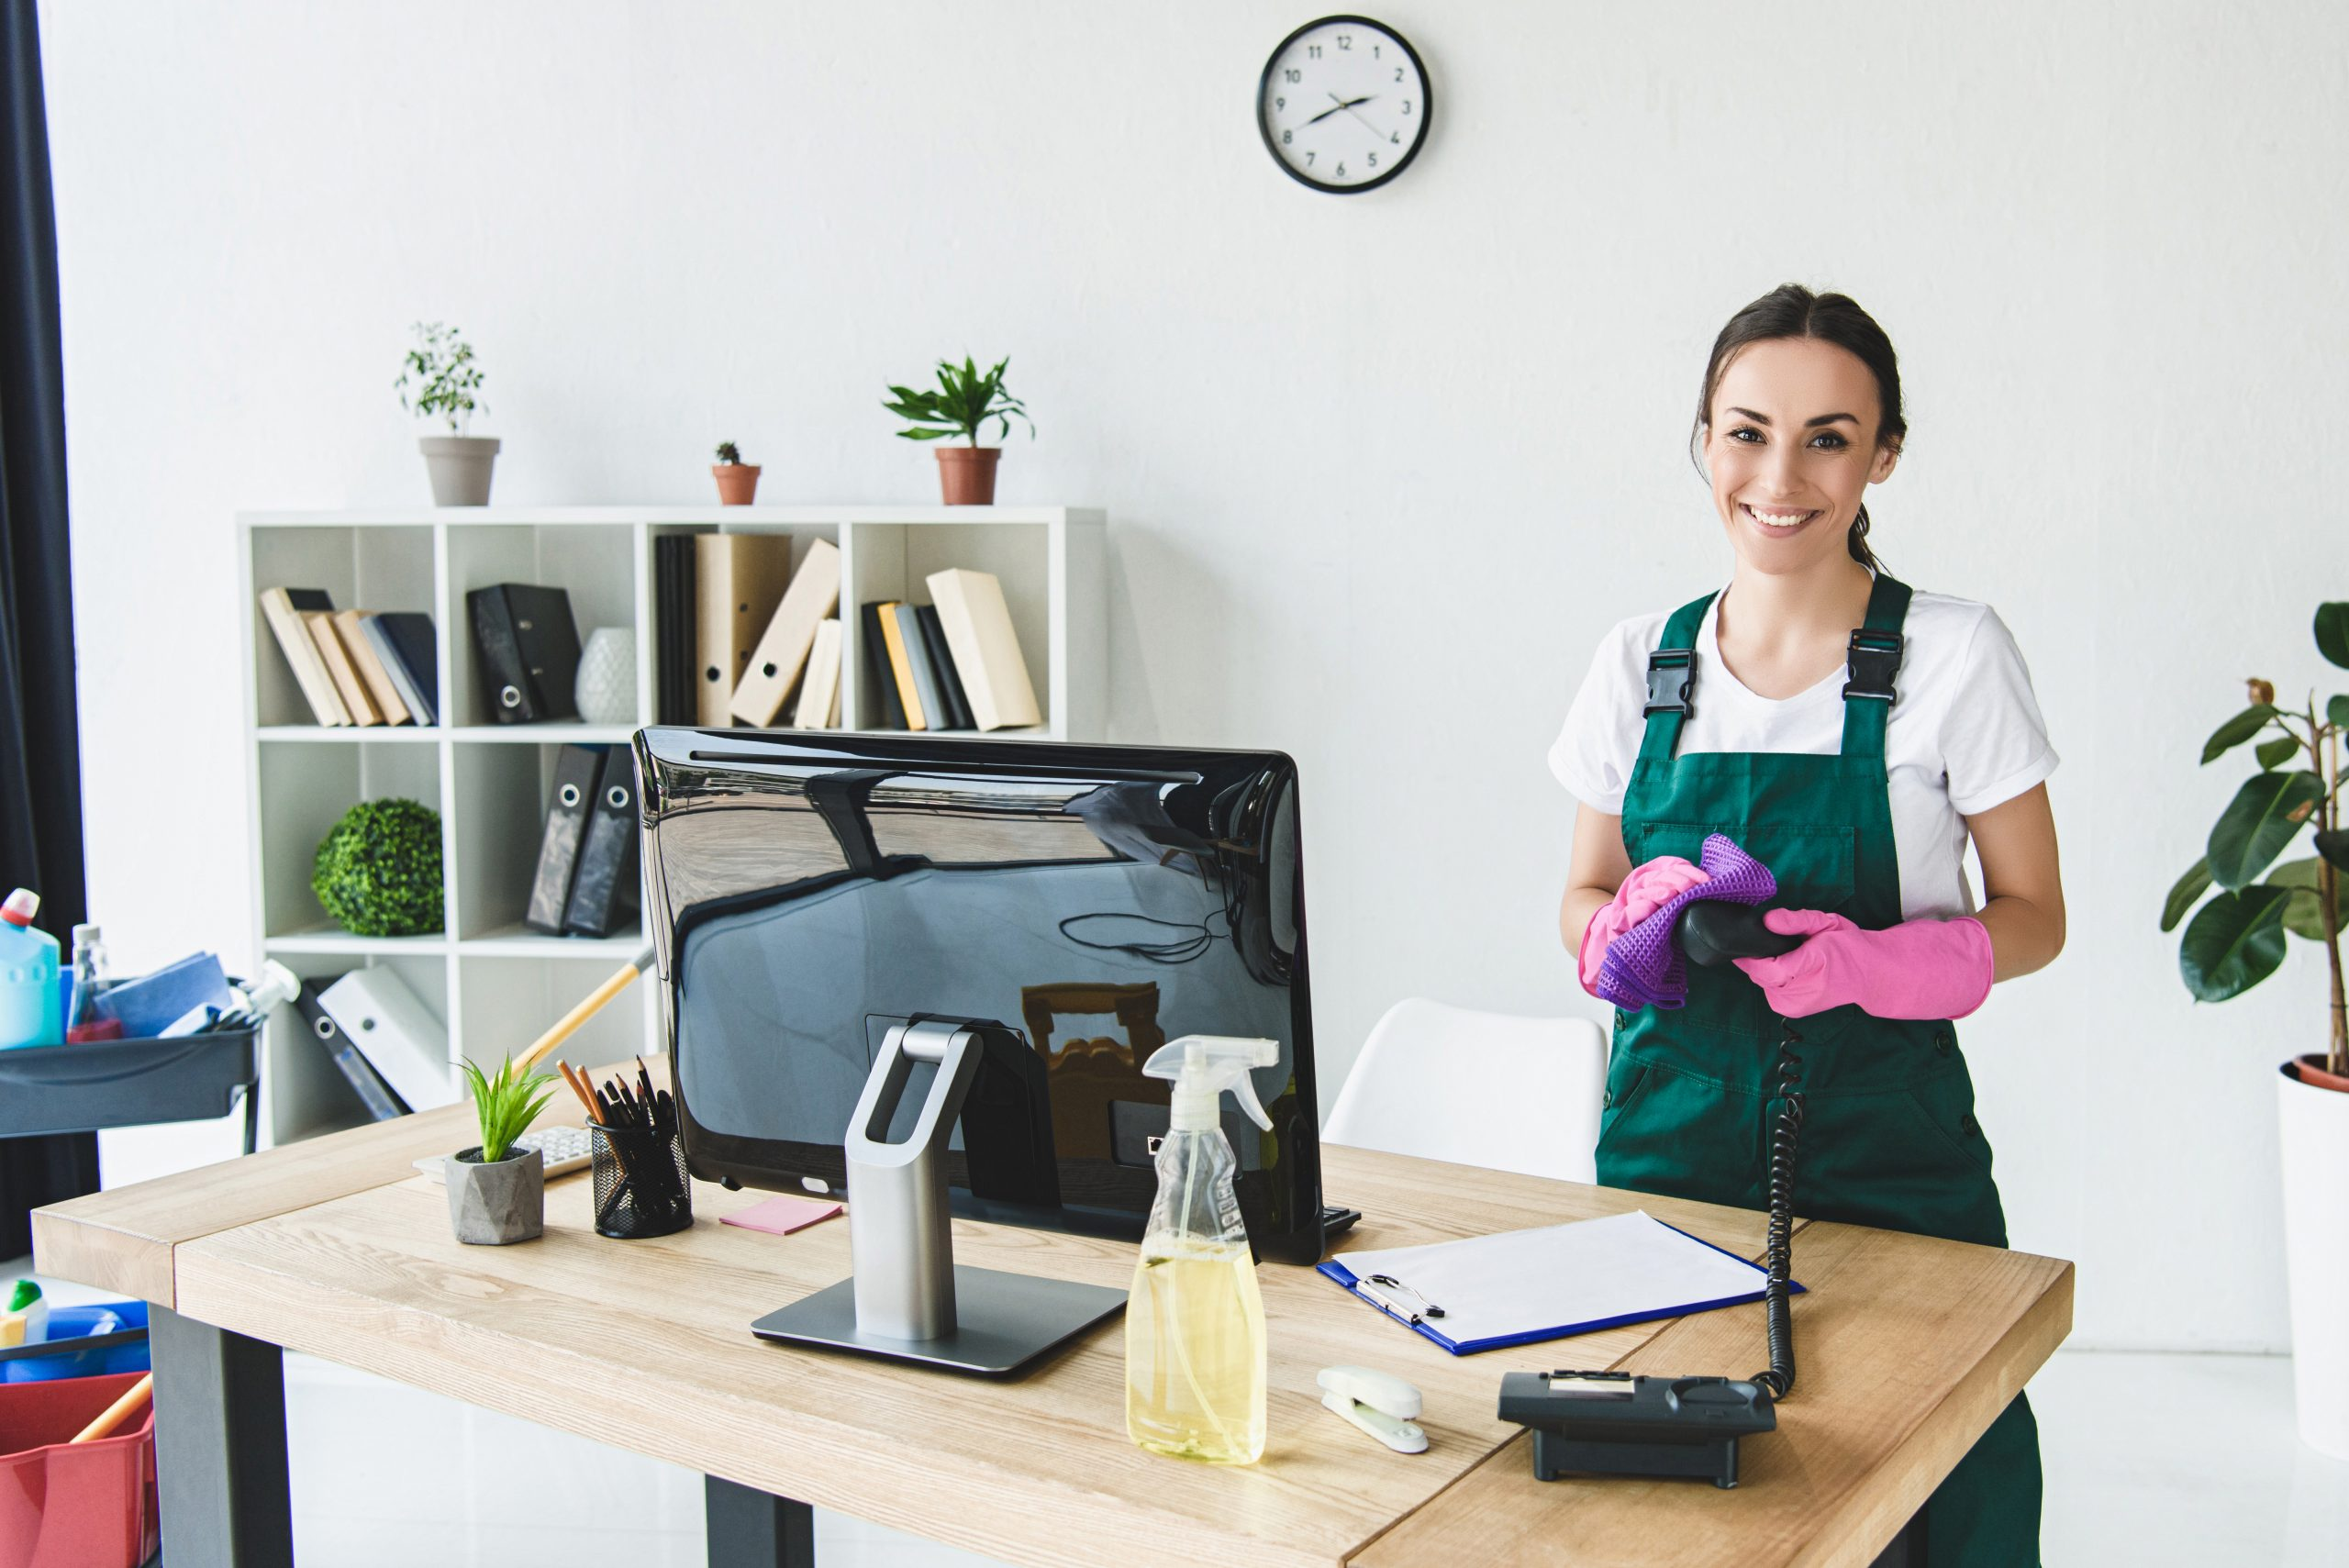 beautiful young professional cleaner smiling at camera while cleaning modern office